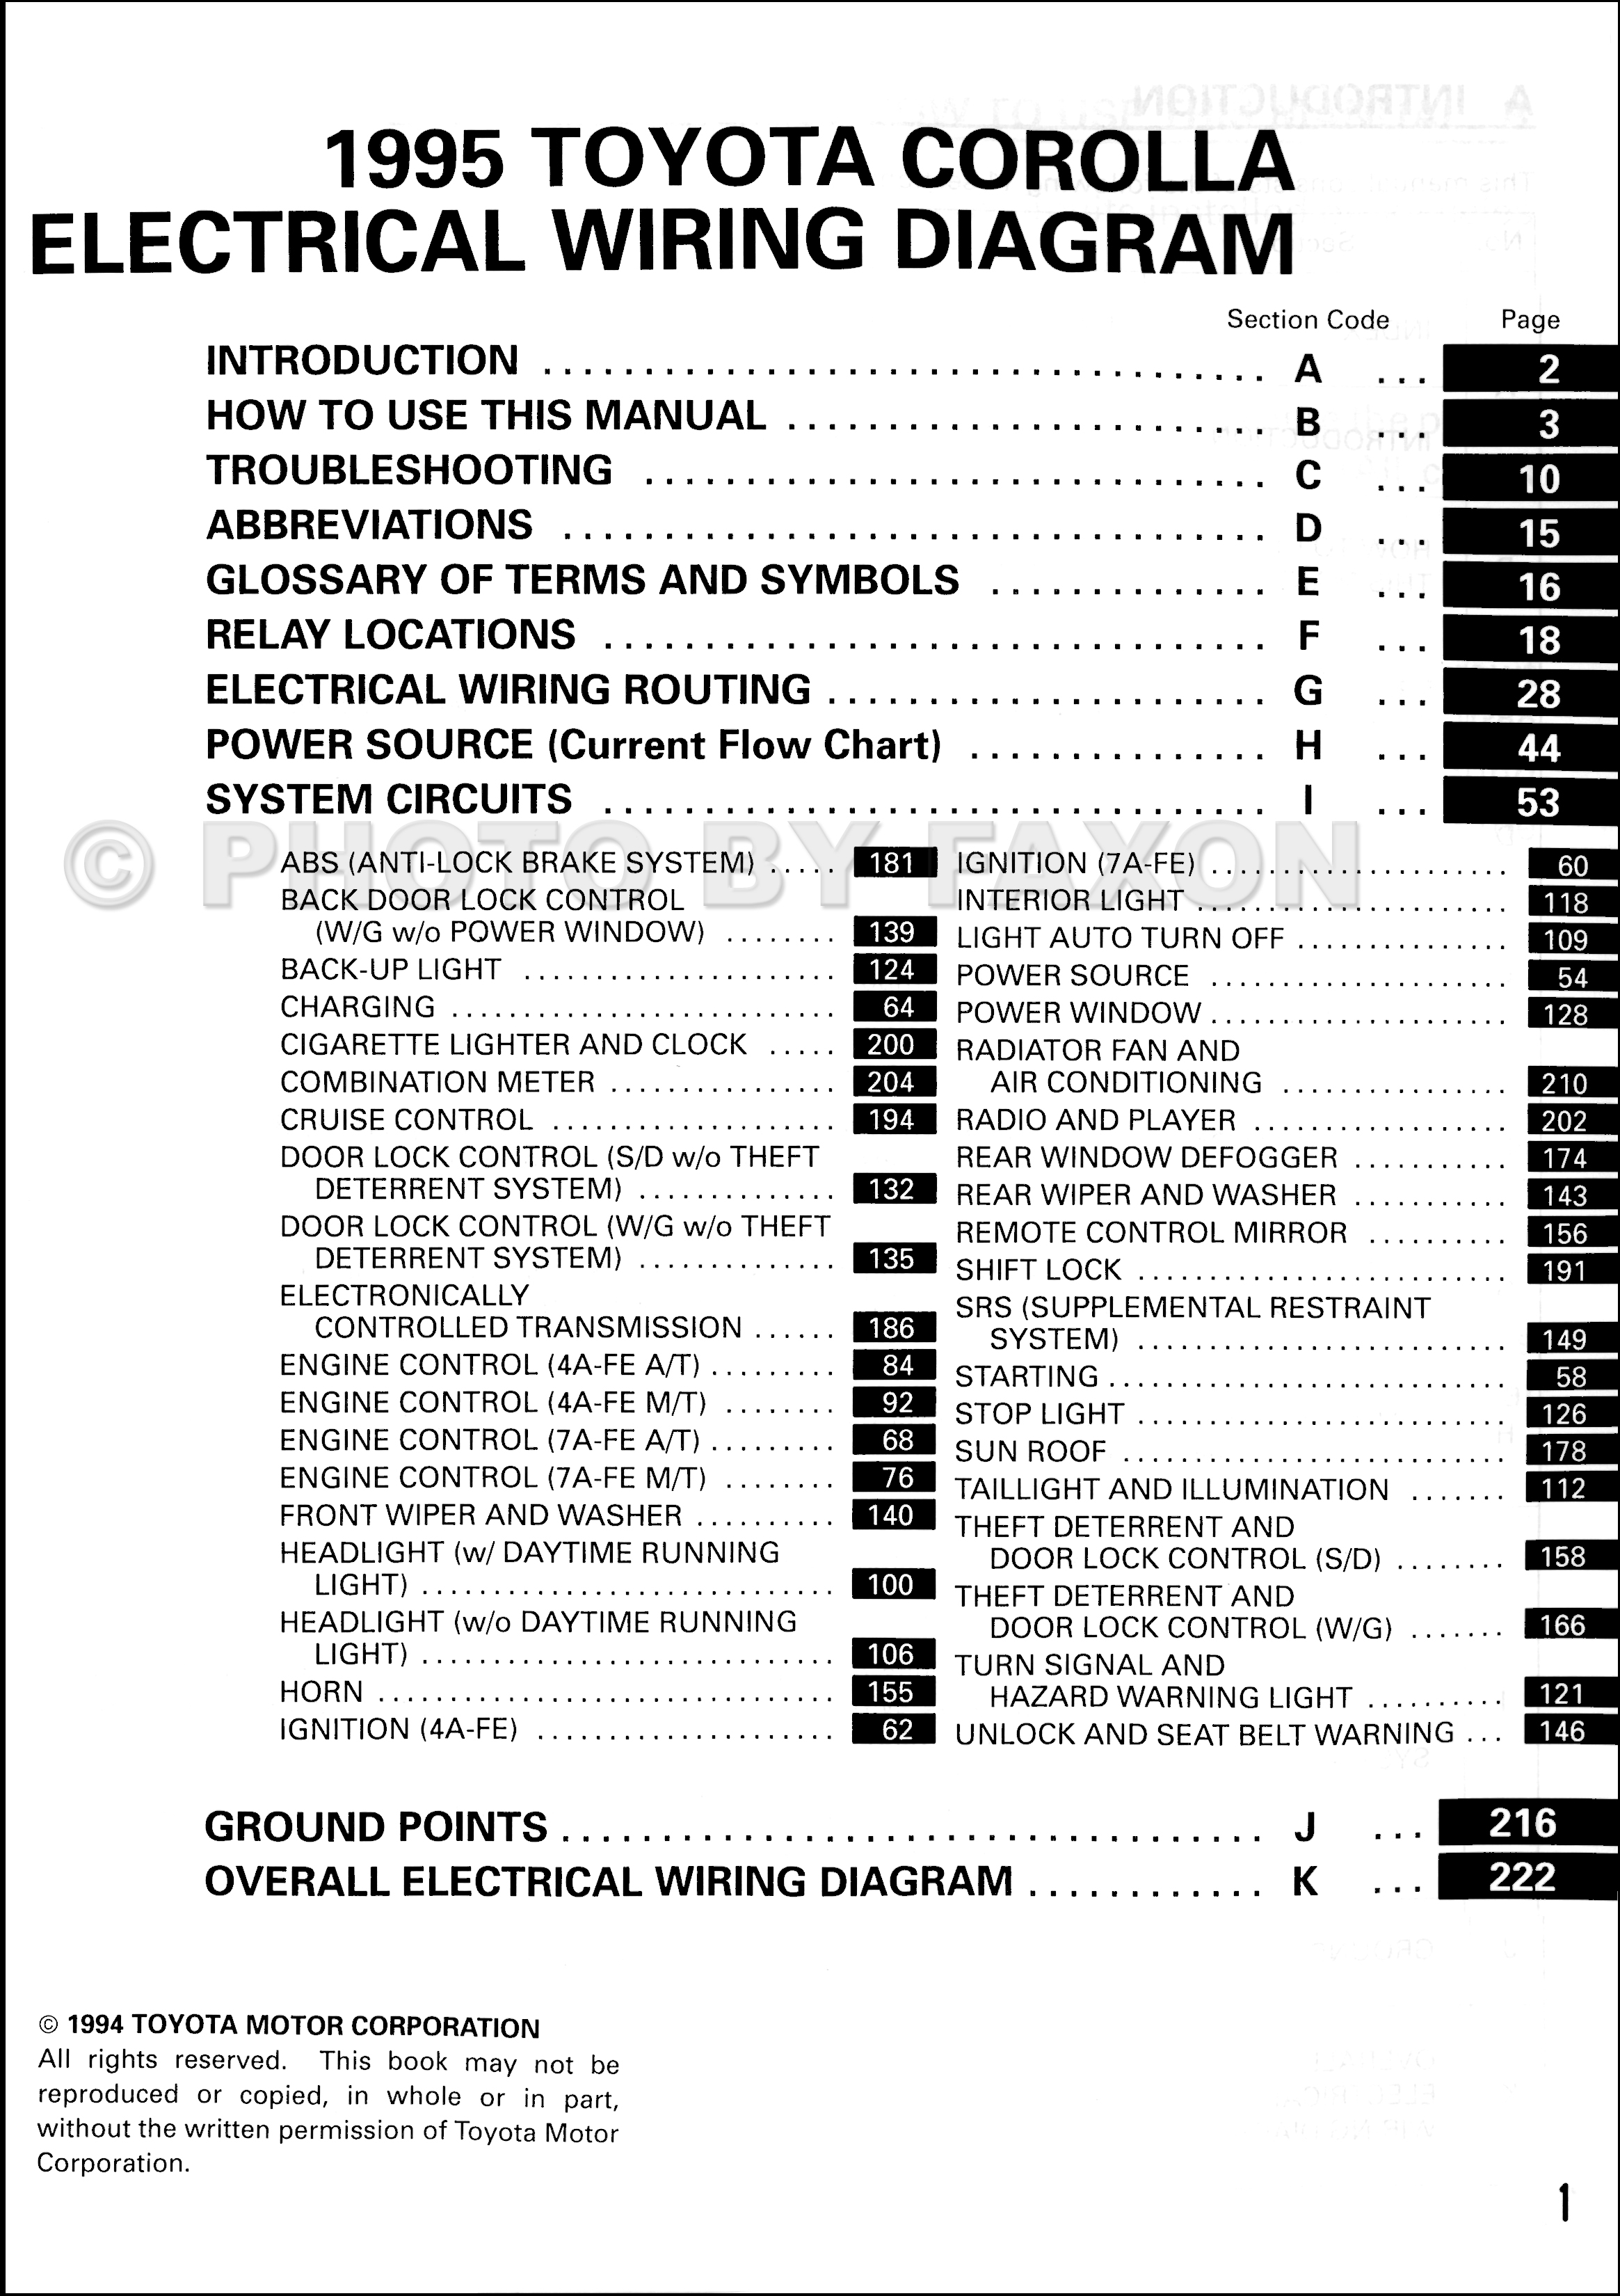 1995ToyotaCorollaOWD TOC 1995 toyota corolla wiring diagram manual original 1995 toyota corolla wiring diagram at nearapp.co